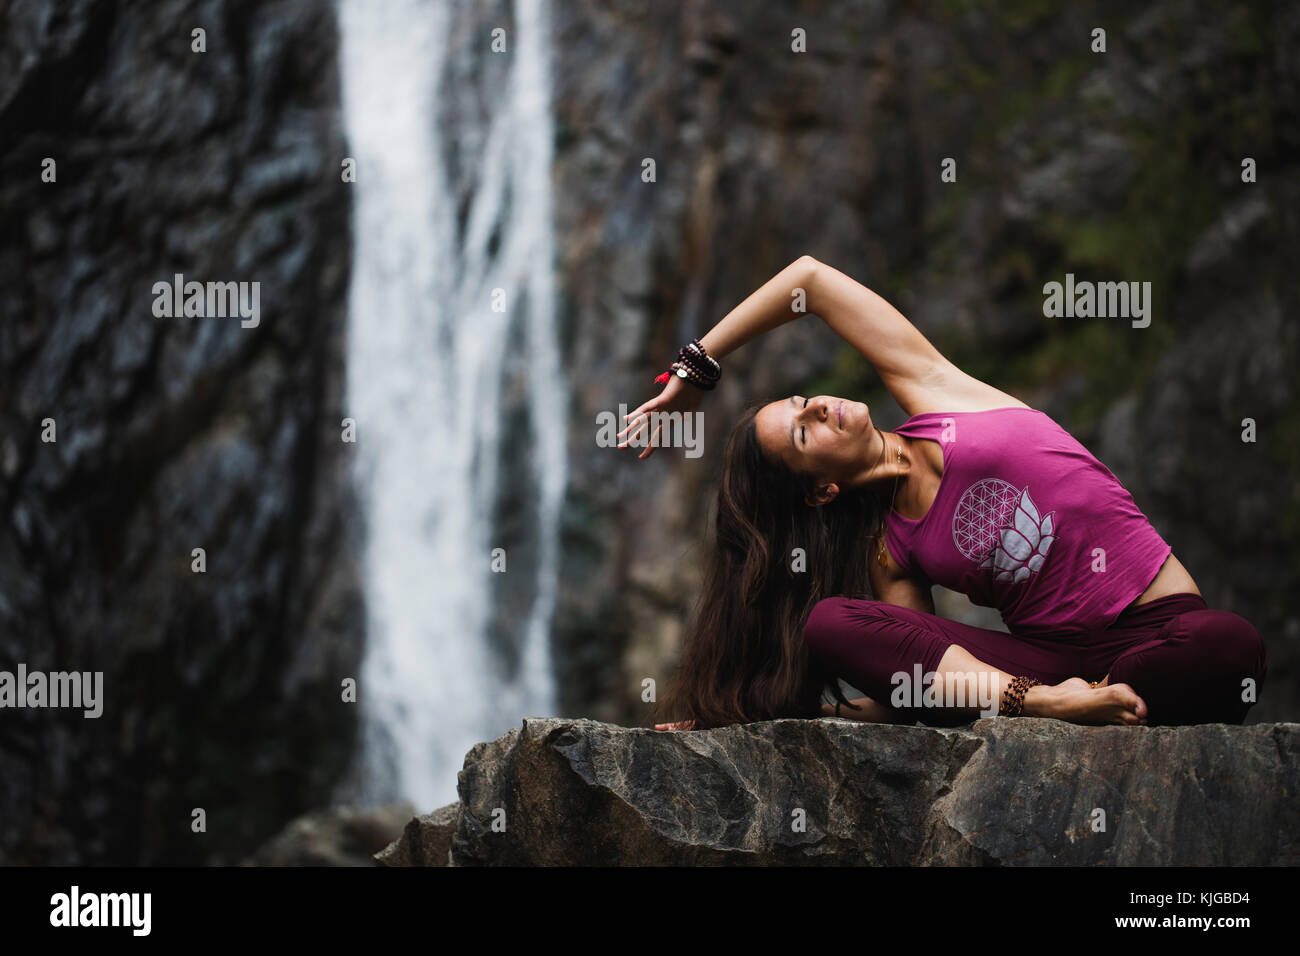 Italy, Lecco, woman doing yoga practice near a waterfall - Stock Image